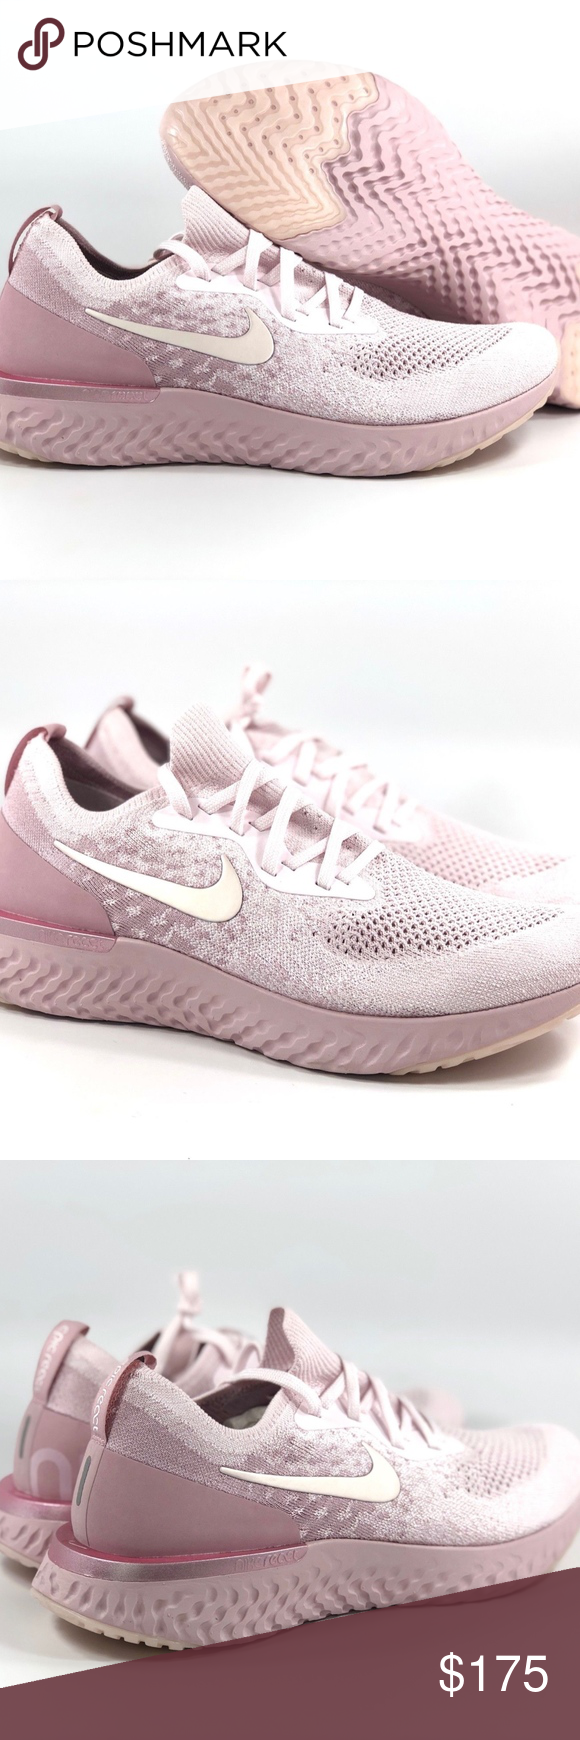 7a03639717f5 Nike Epic React Flyknit Pearl Pink Barely Rose Nike Epic React Flyknit  Pearl Pink Barely Rose